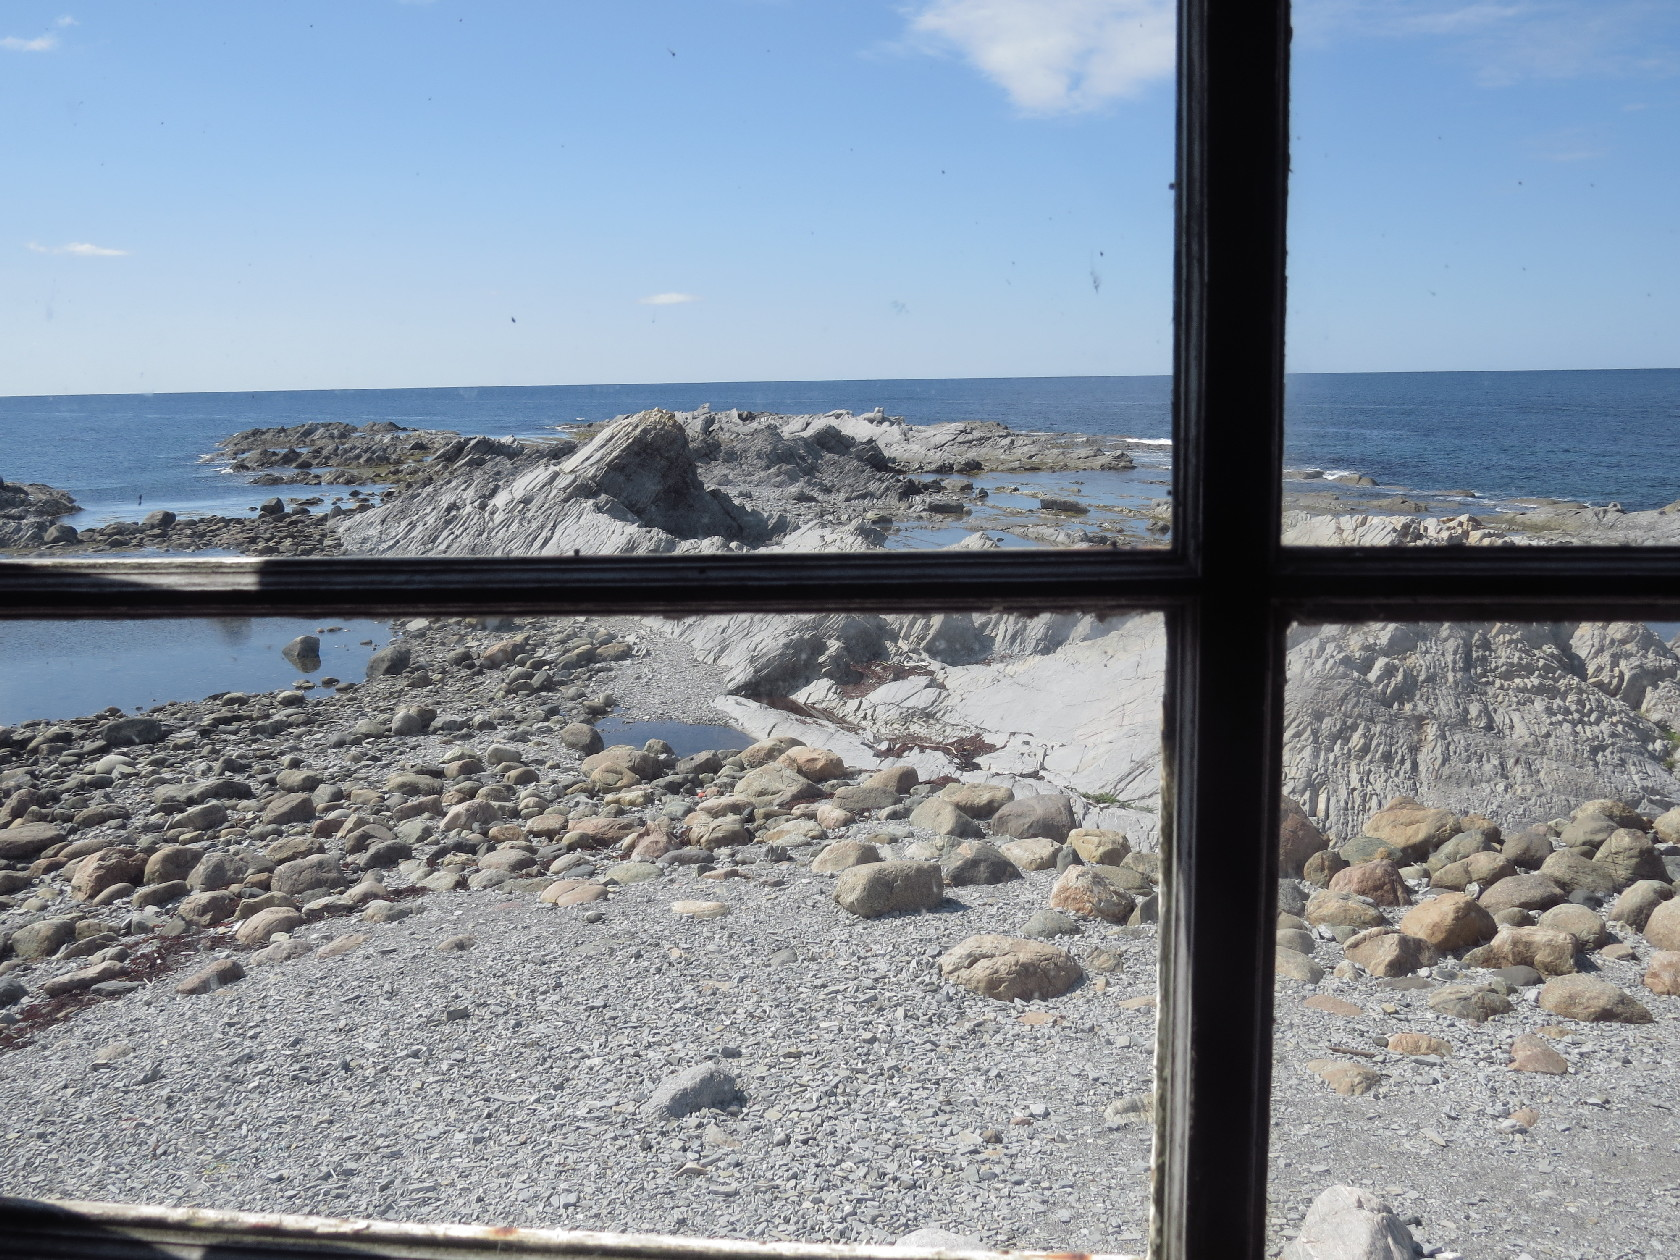 A view from the museum's window on the jetty, Broom's Point, NL